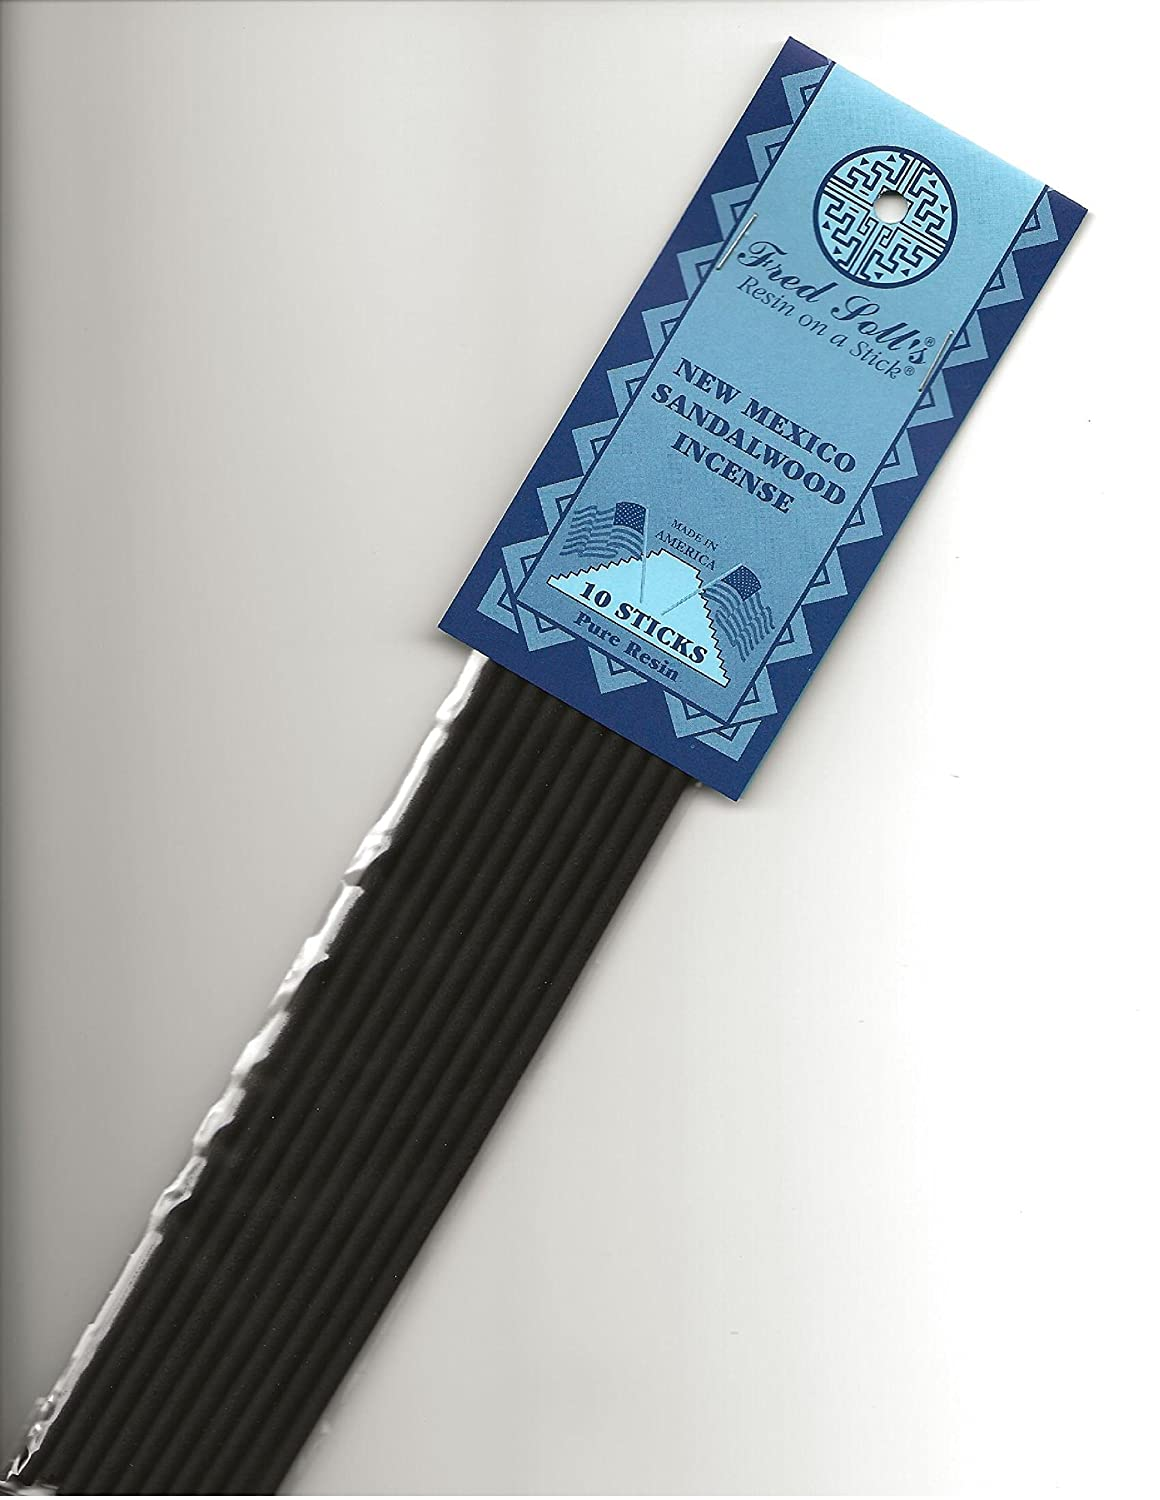 FRED SOLLS Resin ON A Stick New Mexico Sandalwood Incense (20)